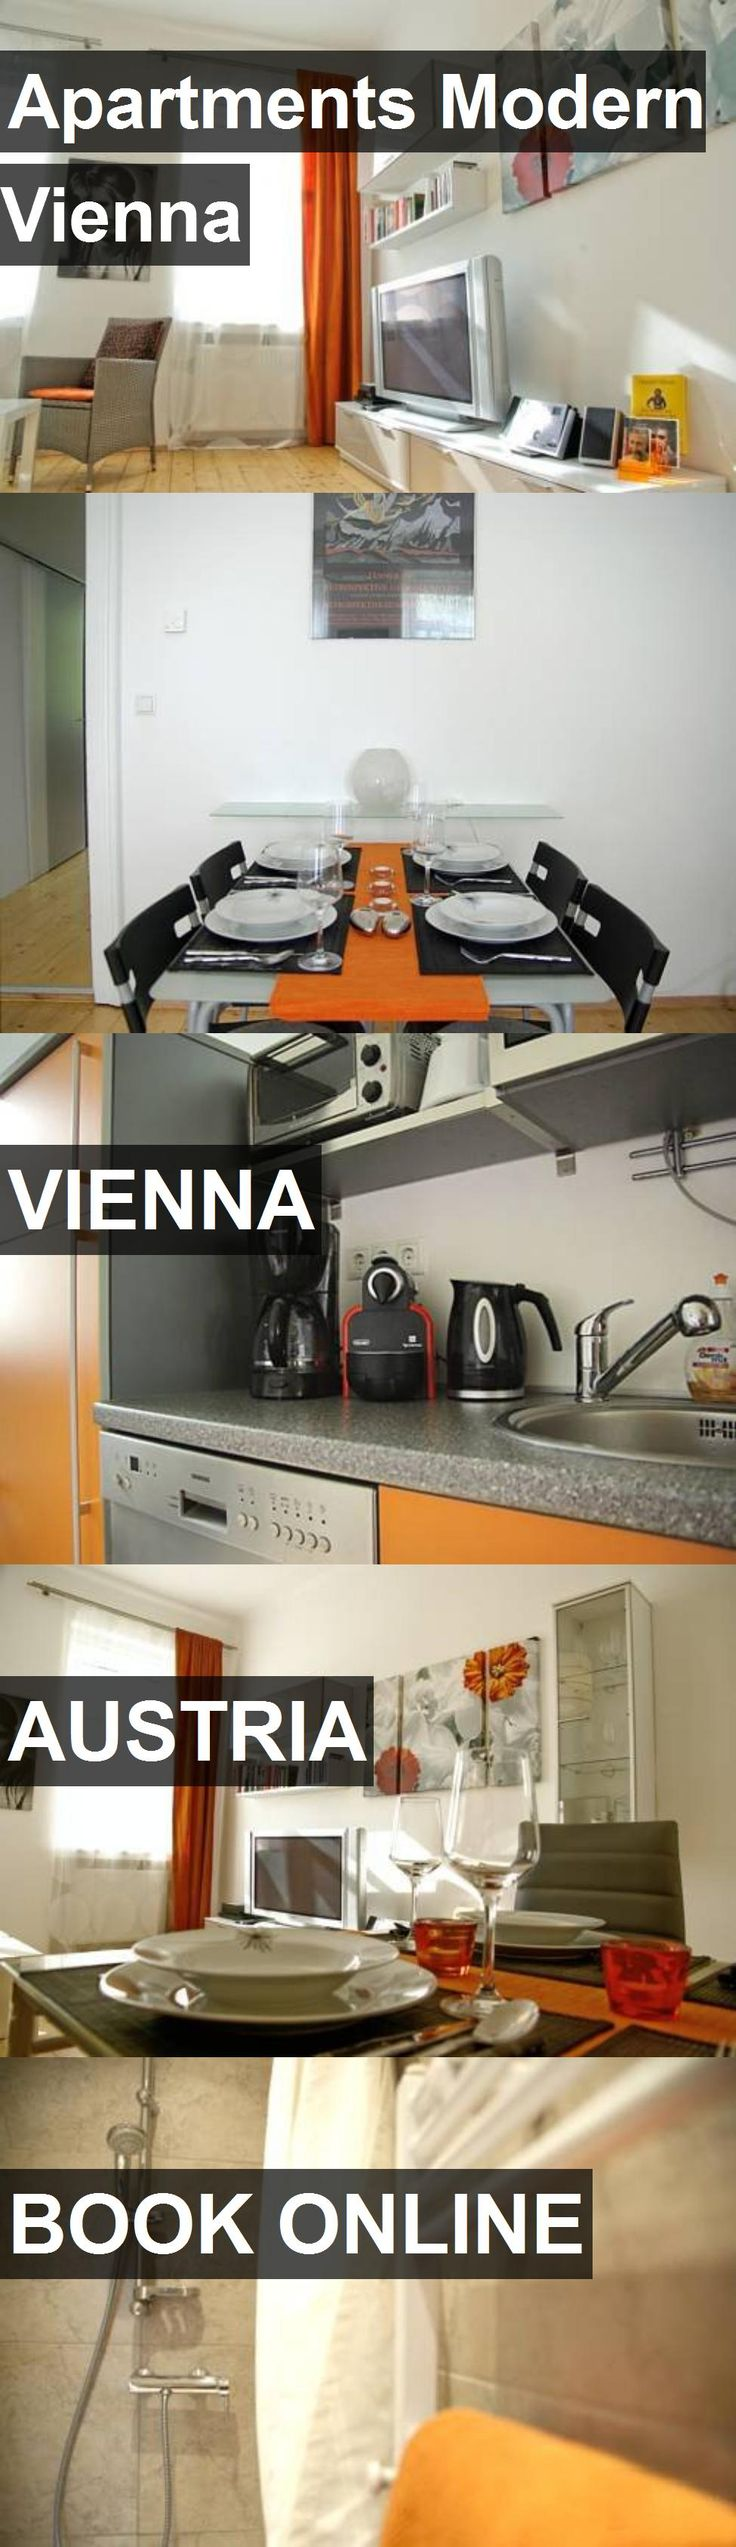 Hotel Apartments Modern Vienna in Vienna, Austria. For more information, photos, reviews and best prices please follow the link. #Austria #Vienna #ApartmentsModernVienna #hotel #travel #vacation